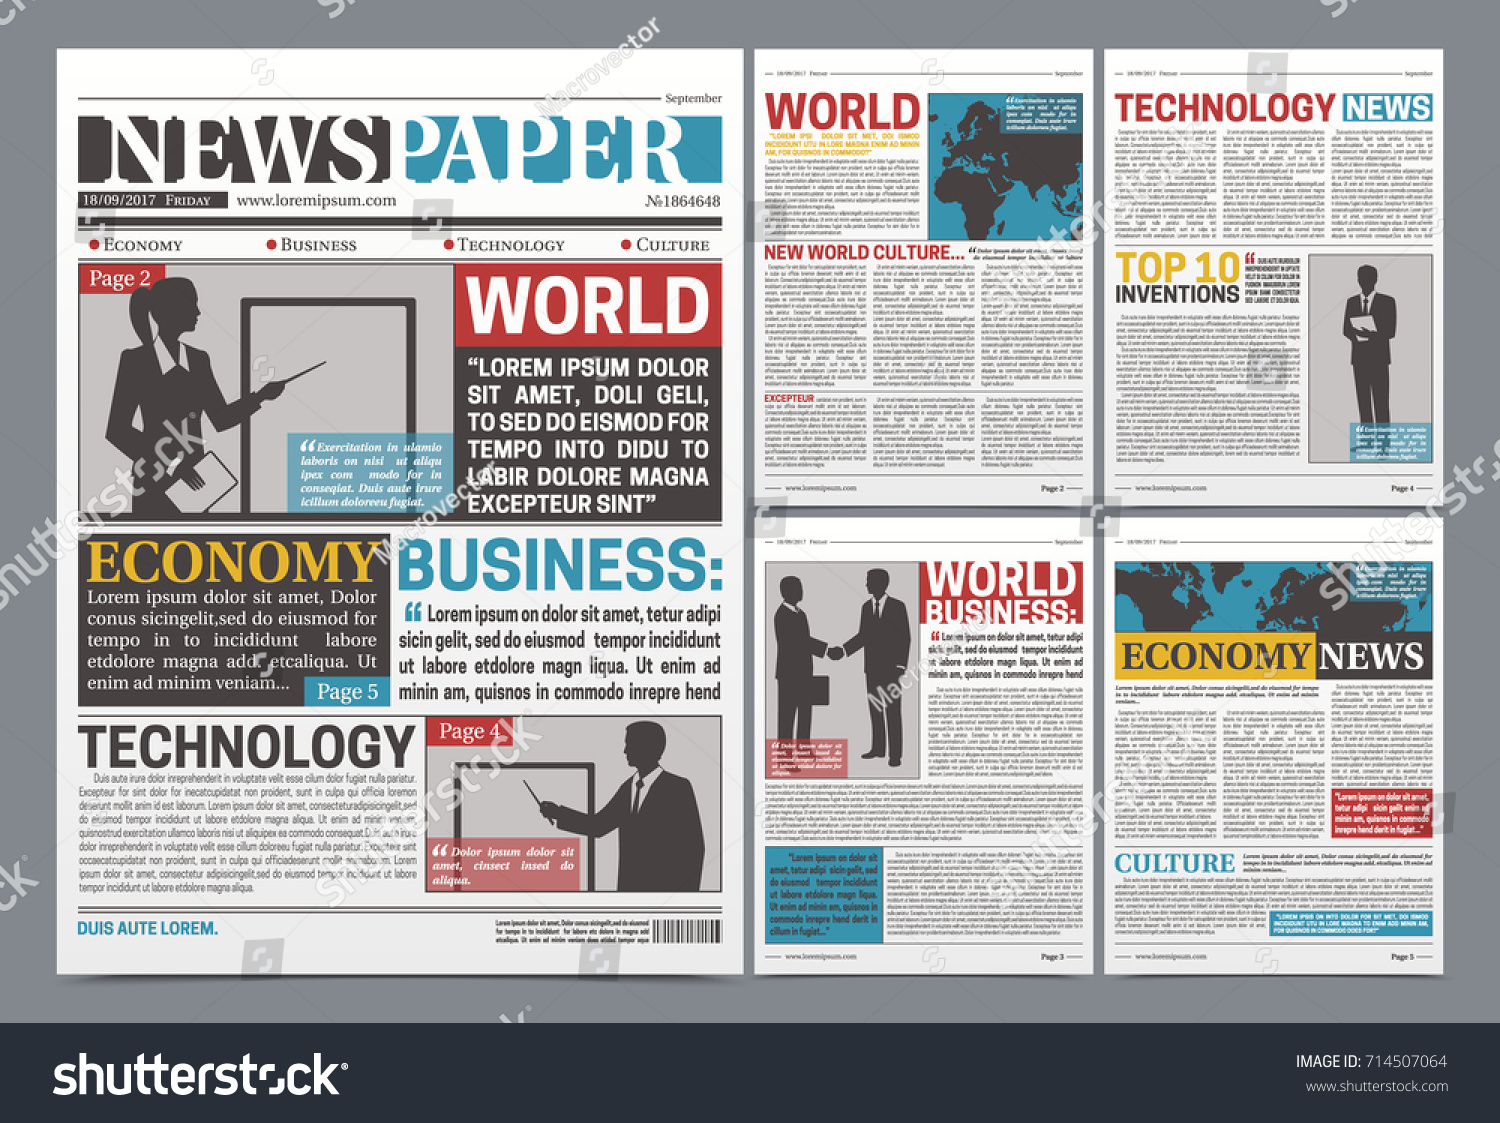 newspaper online template design with world business economy and technology news headlines with silhouettes realistic vector